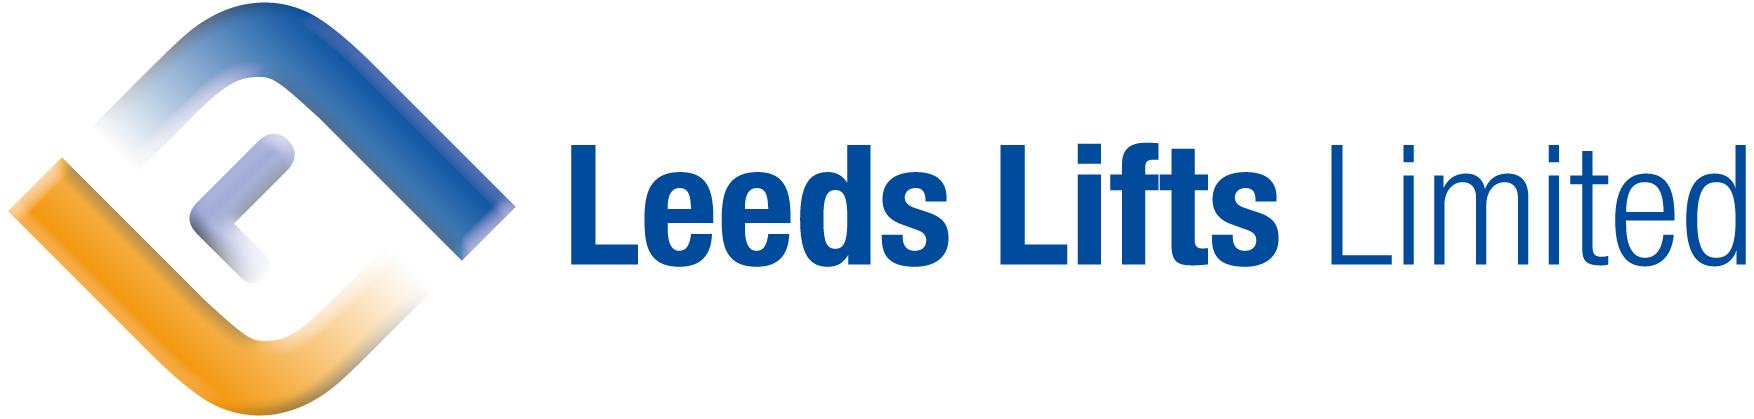 Leeds Lifts Logo